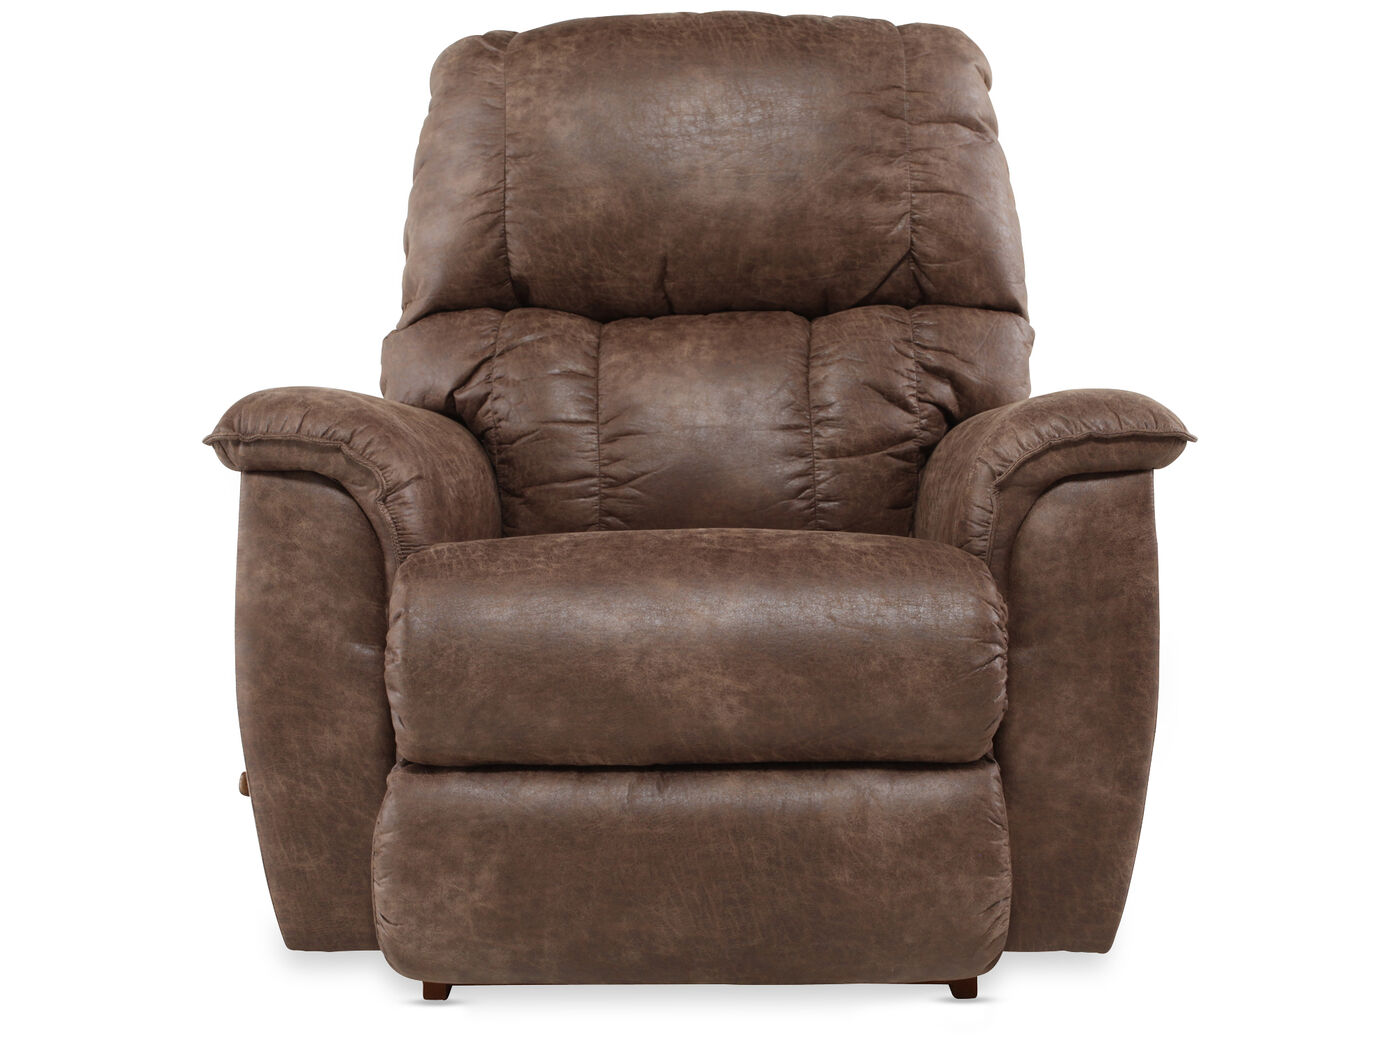 Parts For Lazy Boy Recliners Lazy Boy Electric Recliners